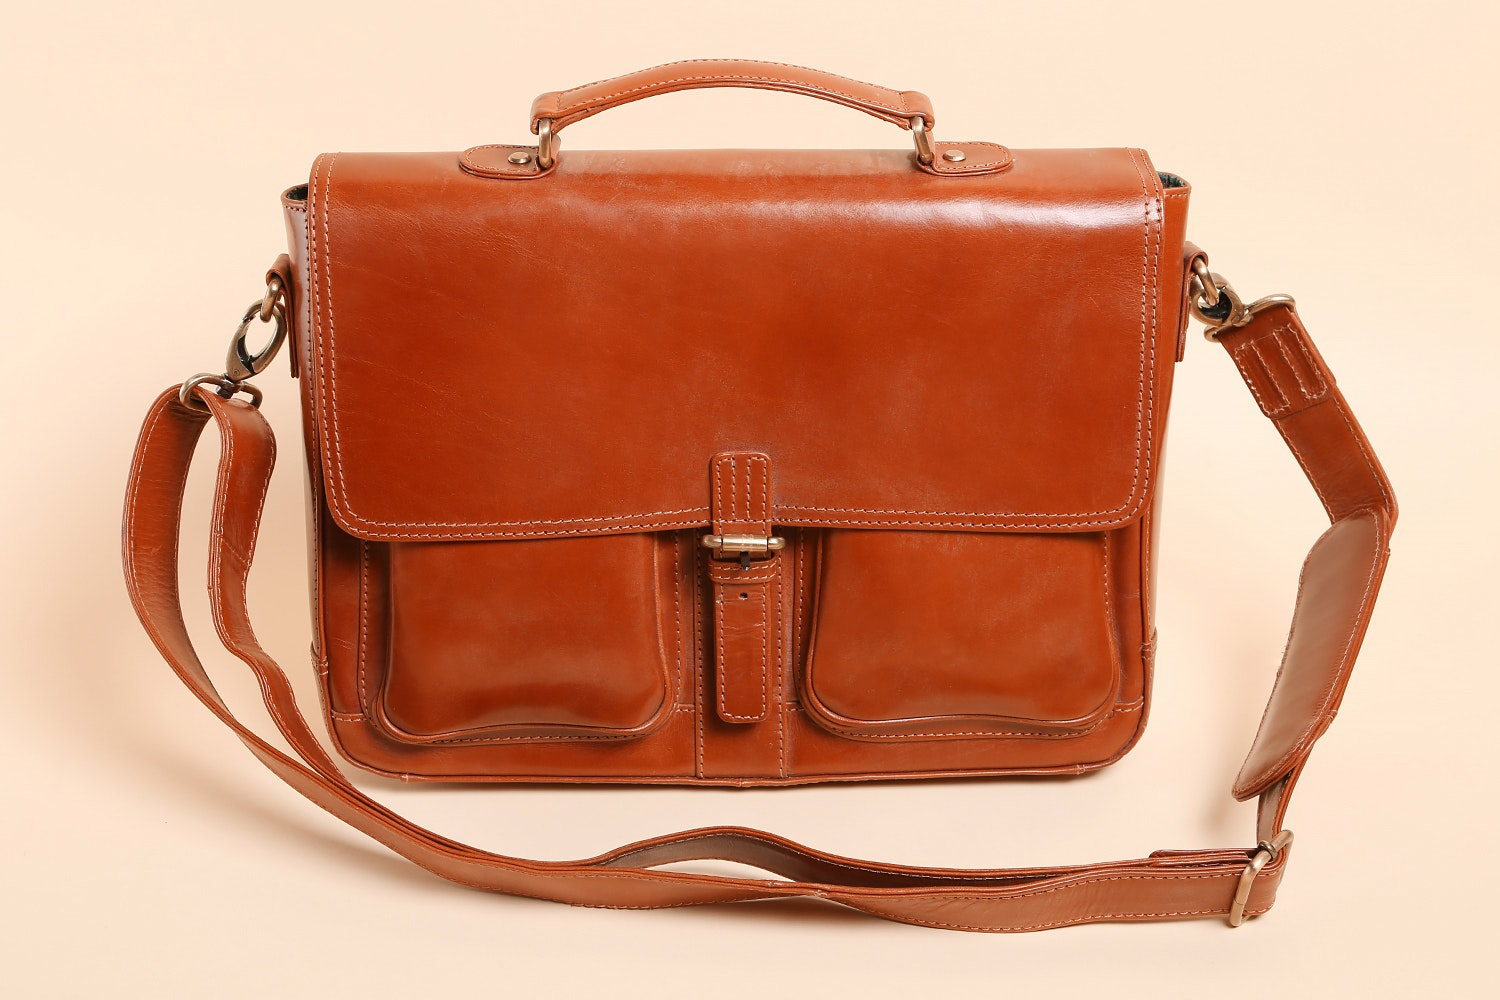 British Belt Co. Burford Satchel